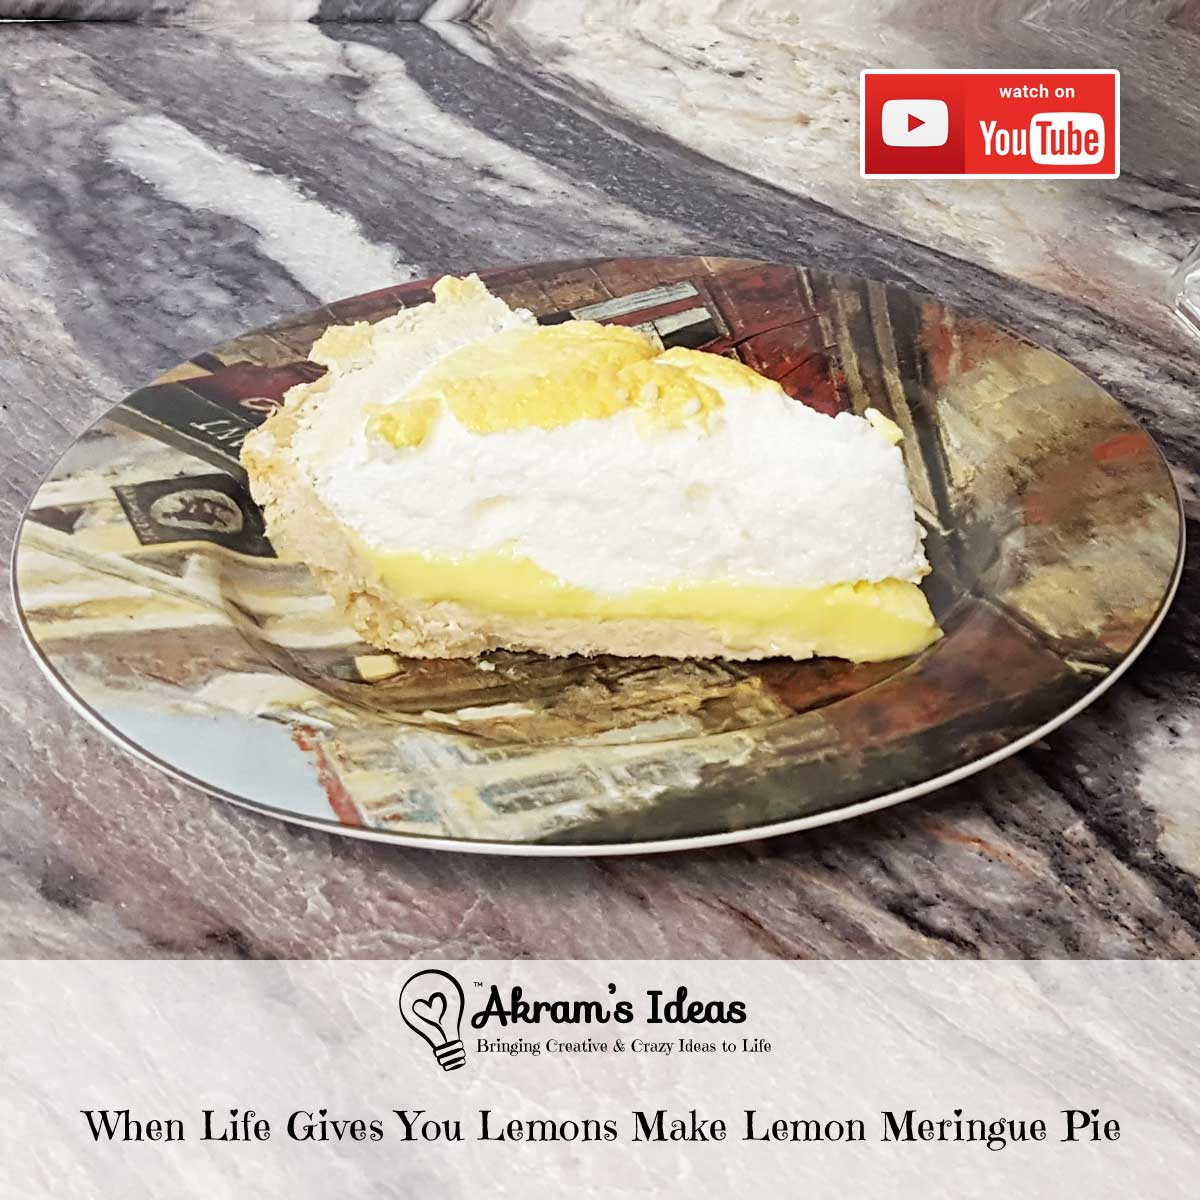 Learn how to make the perfect Lemon Meringue Pie with this easy how-to video tutorial.